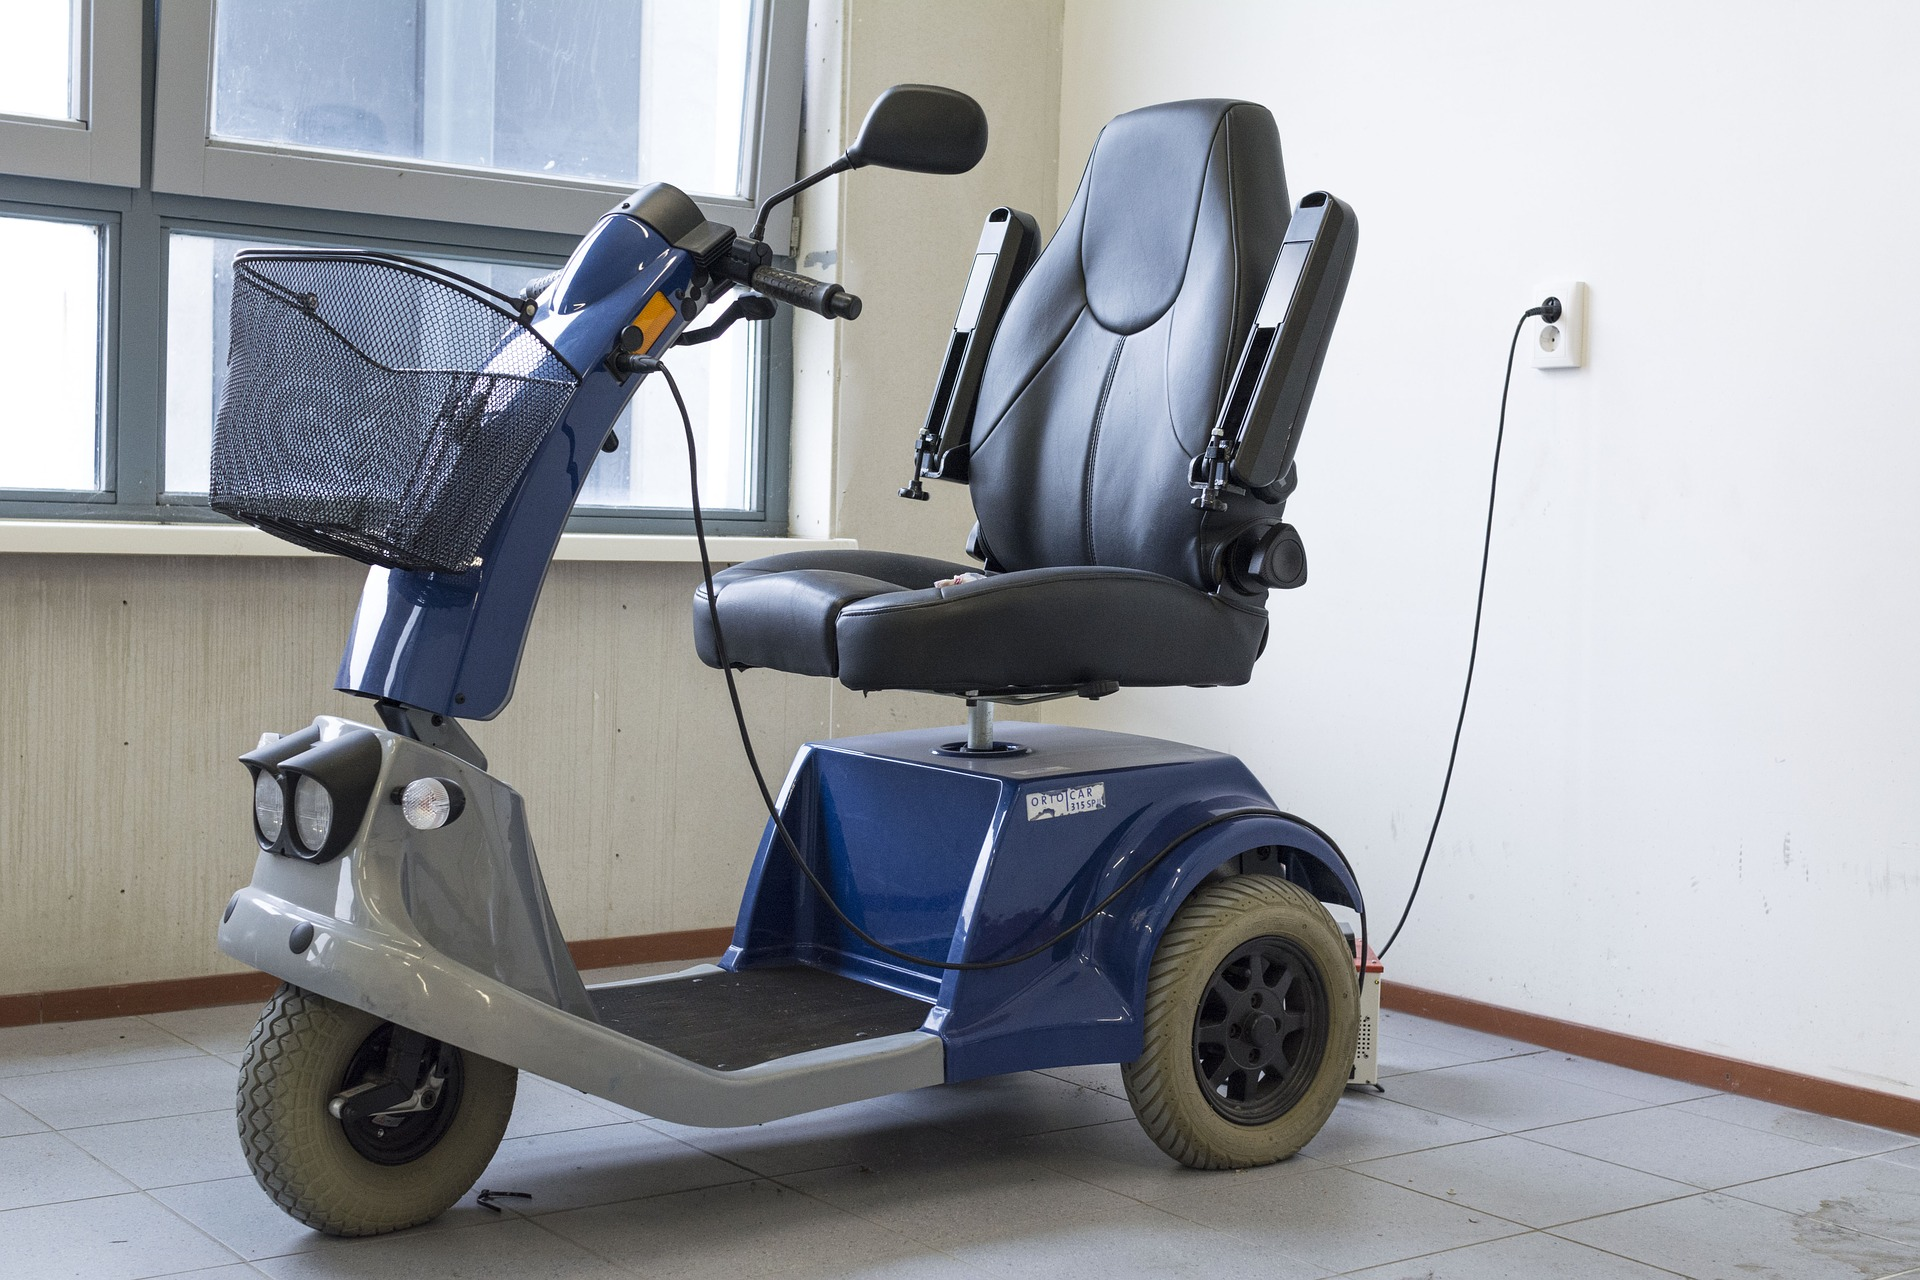 <!DOCTYPE html> <html> <head> </head> <body> <p>After buying a mobility scooter, it is important that you keep it well maintained and to get it serviced on an annual basis. This will help the scooter last longer and reduce the chance of it breaking down.</p> <p>In this guide we will discuss the steps on keeping your mobility scooter maintained and looking like new.</p> </body> </html>